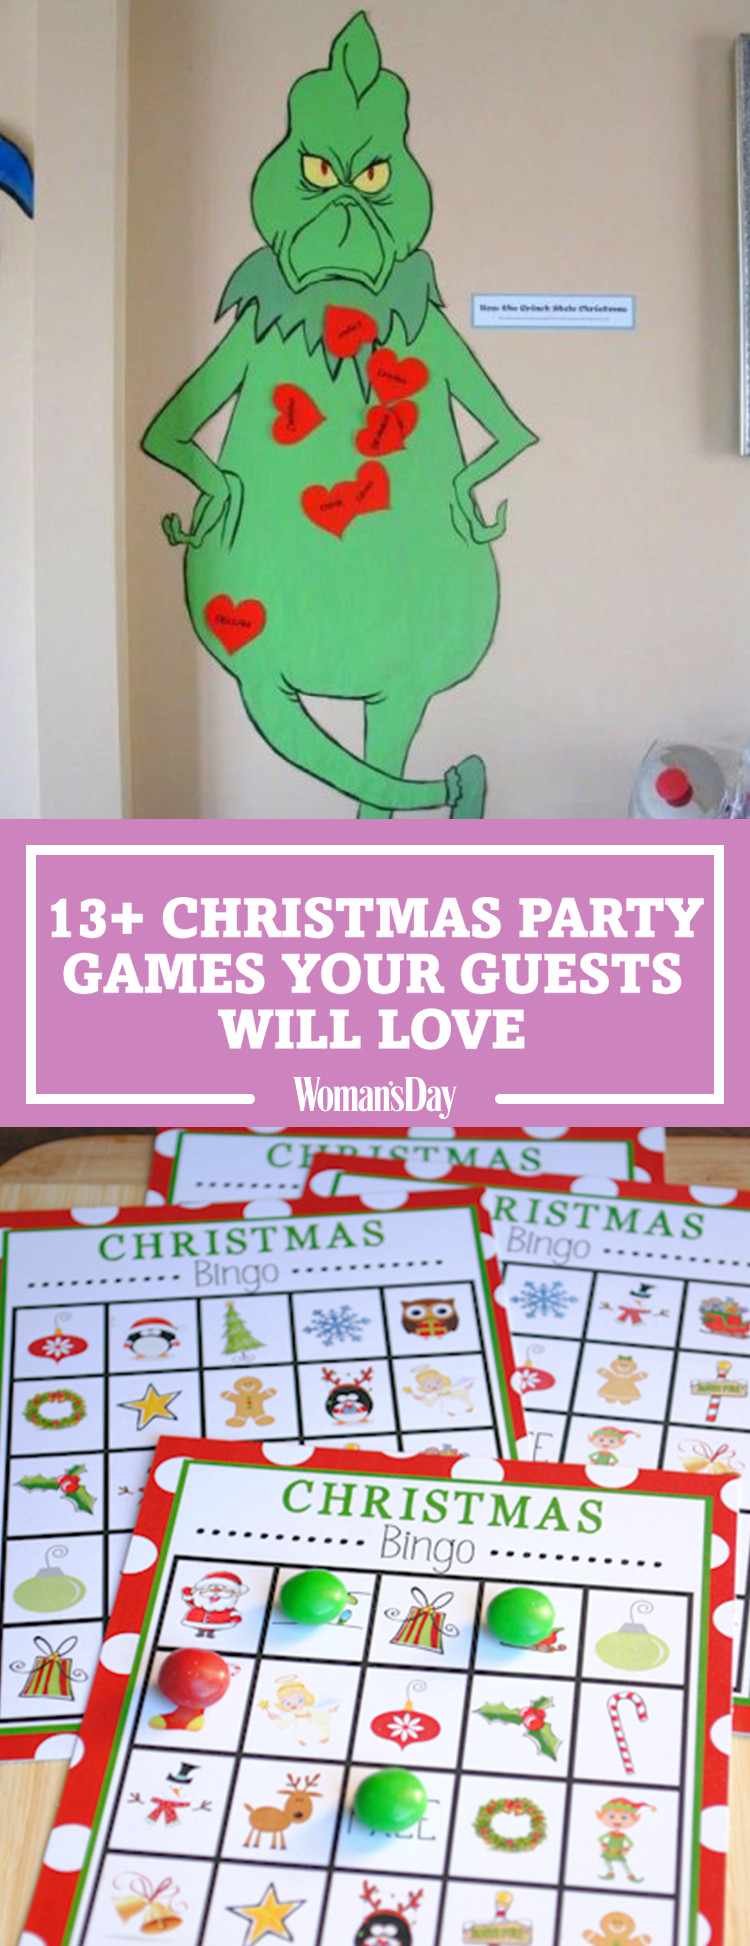 Fun Office Christmas Party Ideas  17 Fun Christmas Party Games for Kids DIY Holiday Party